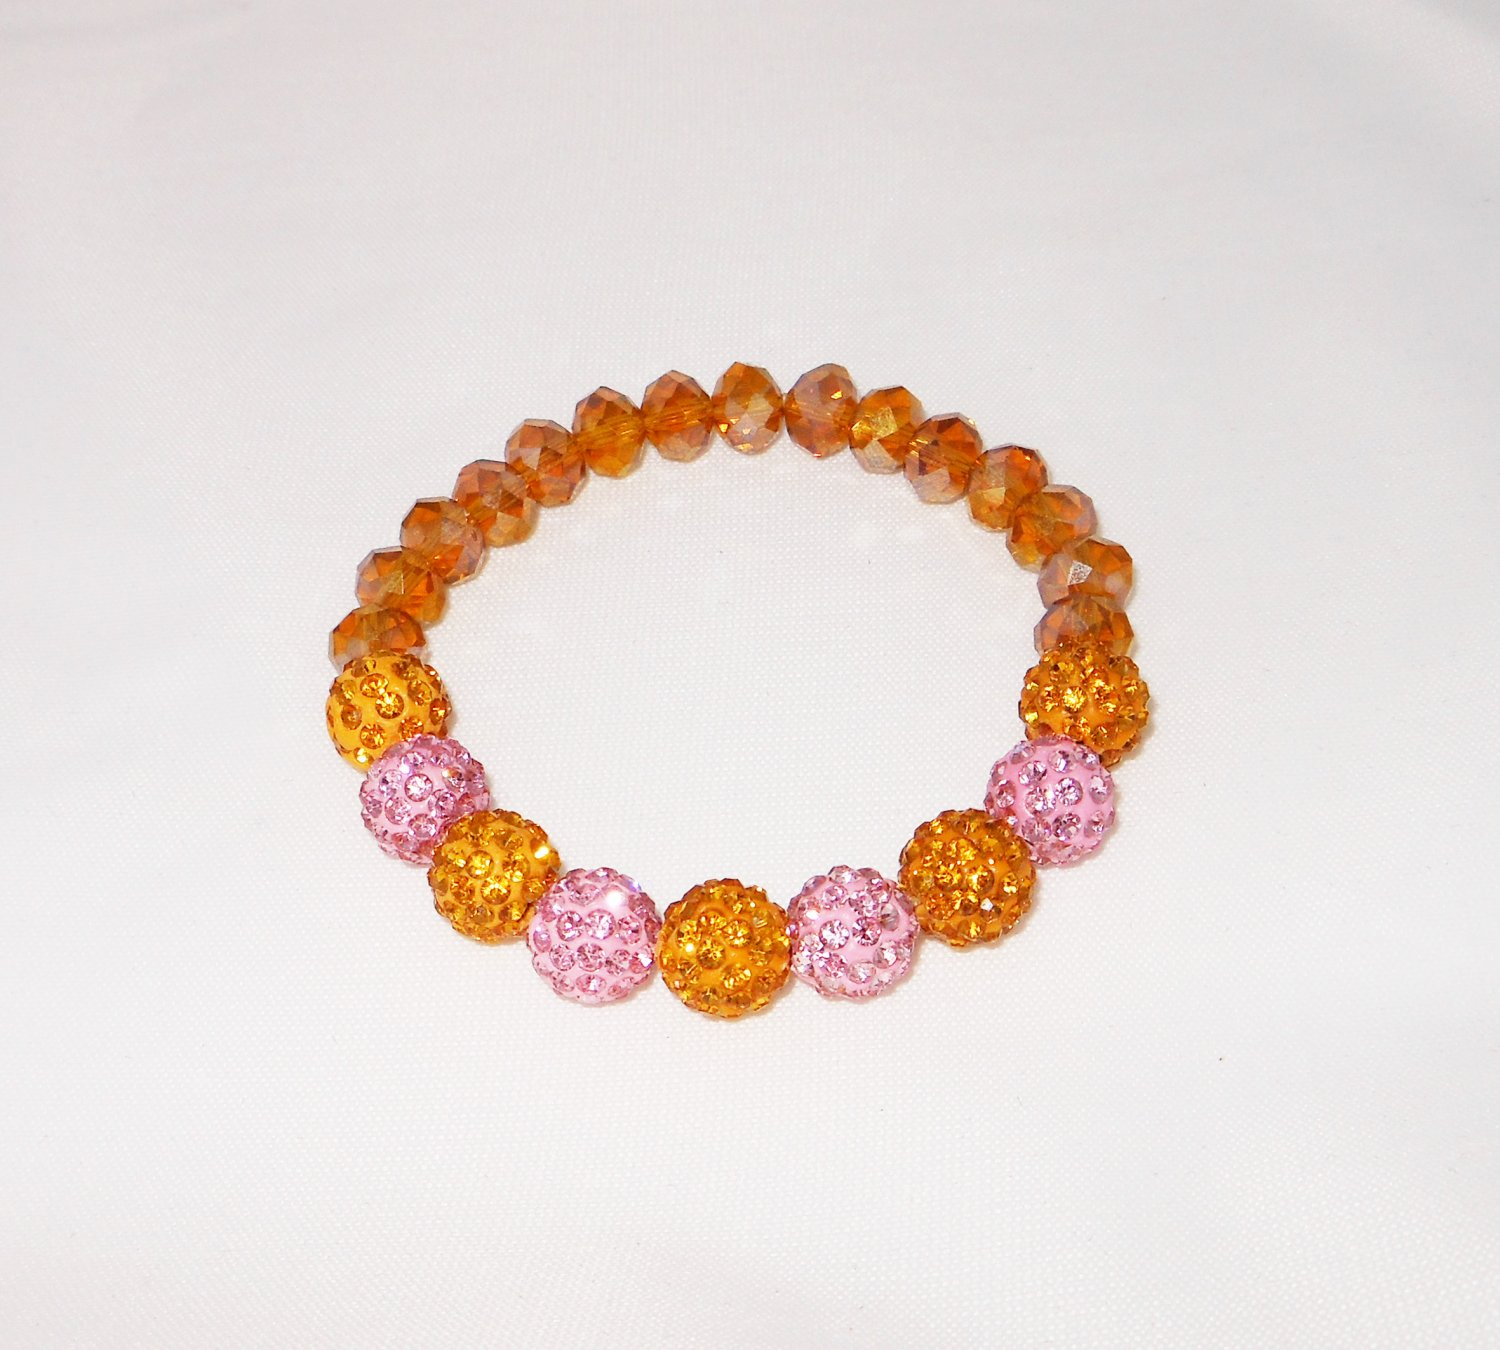 Gold and Pink Crystal Stretchy Shamballa Bracelet with crystal strap